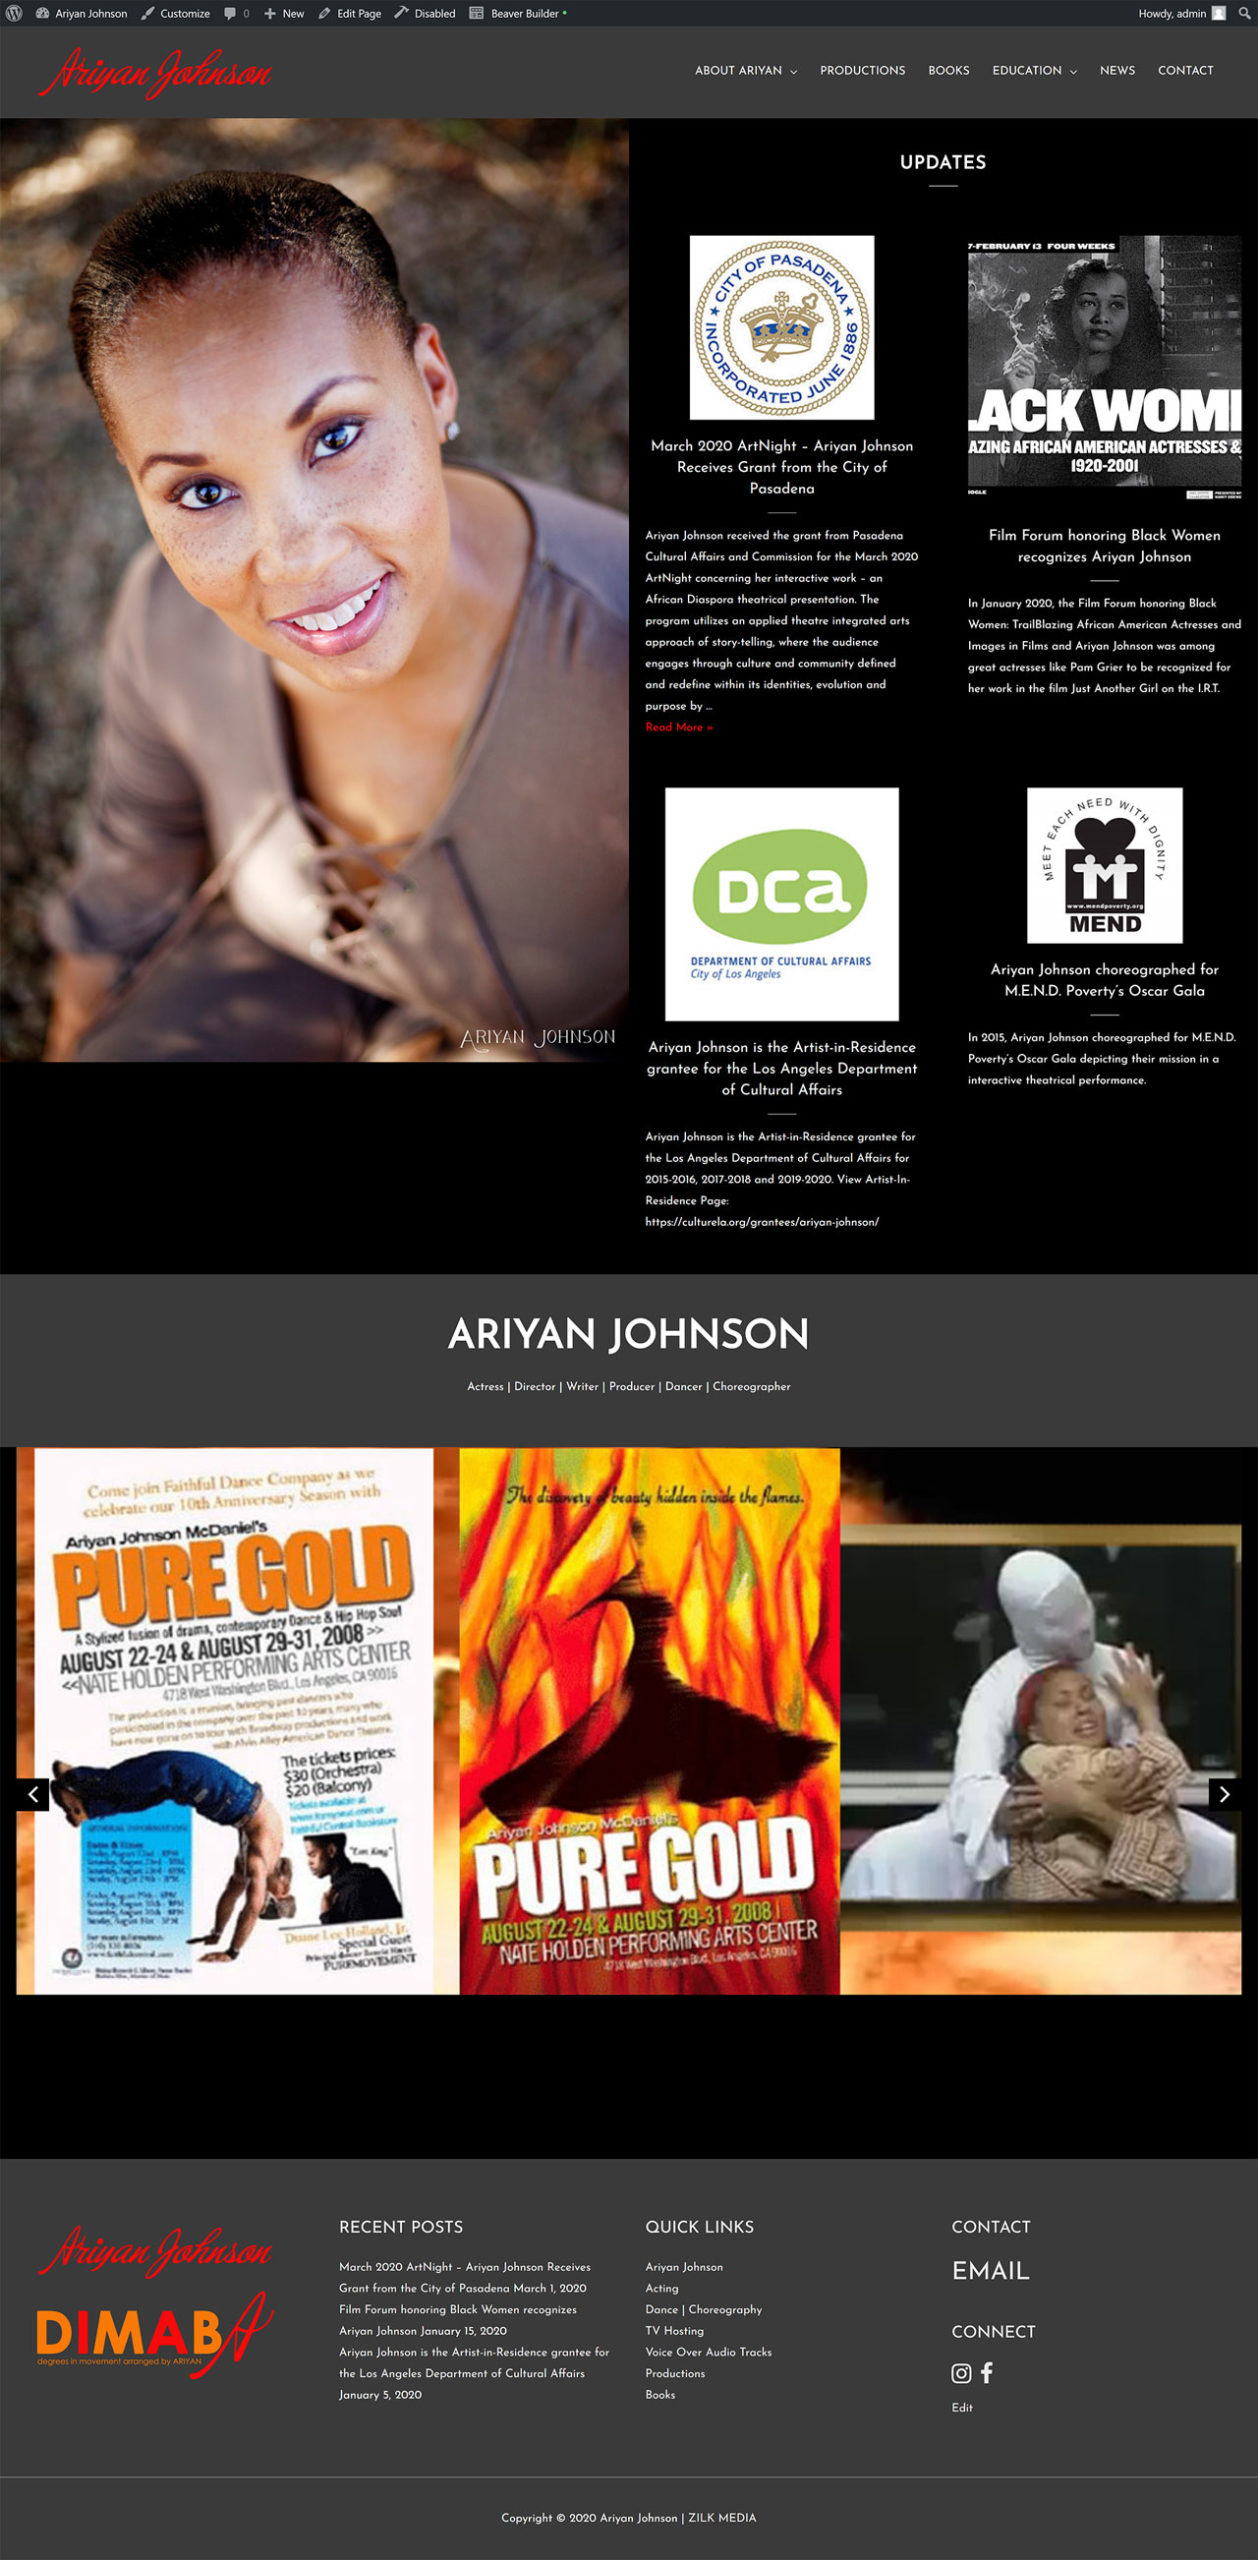 ariyan-johnson-home